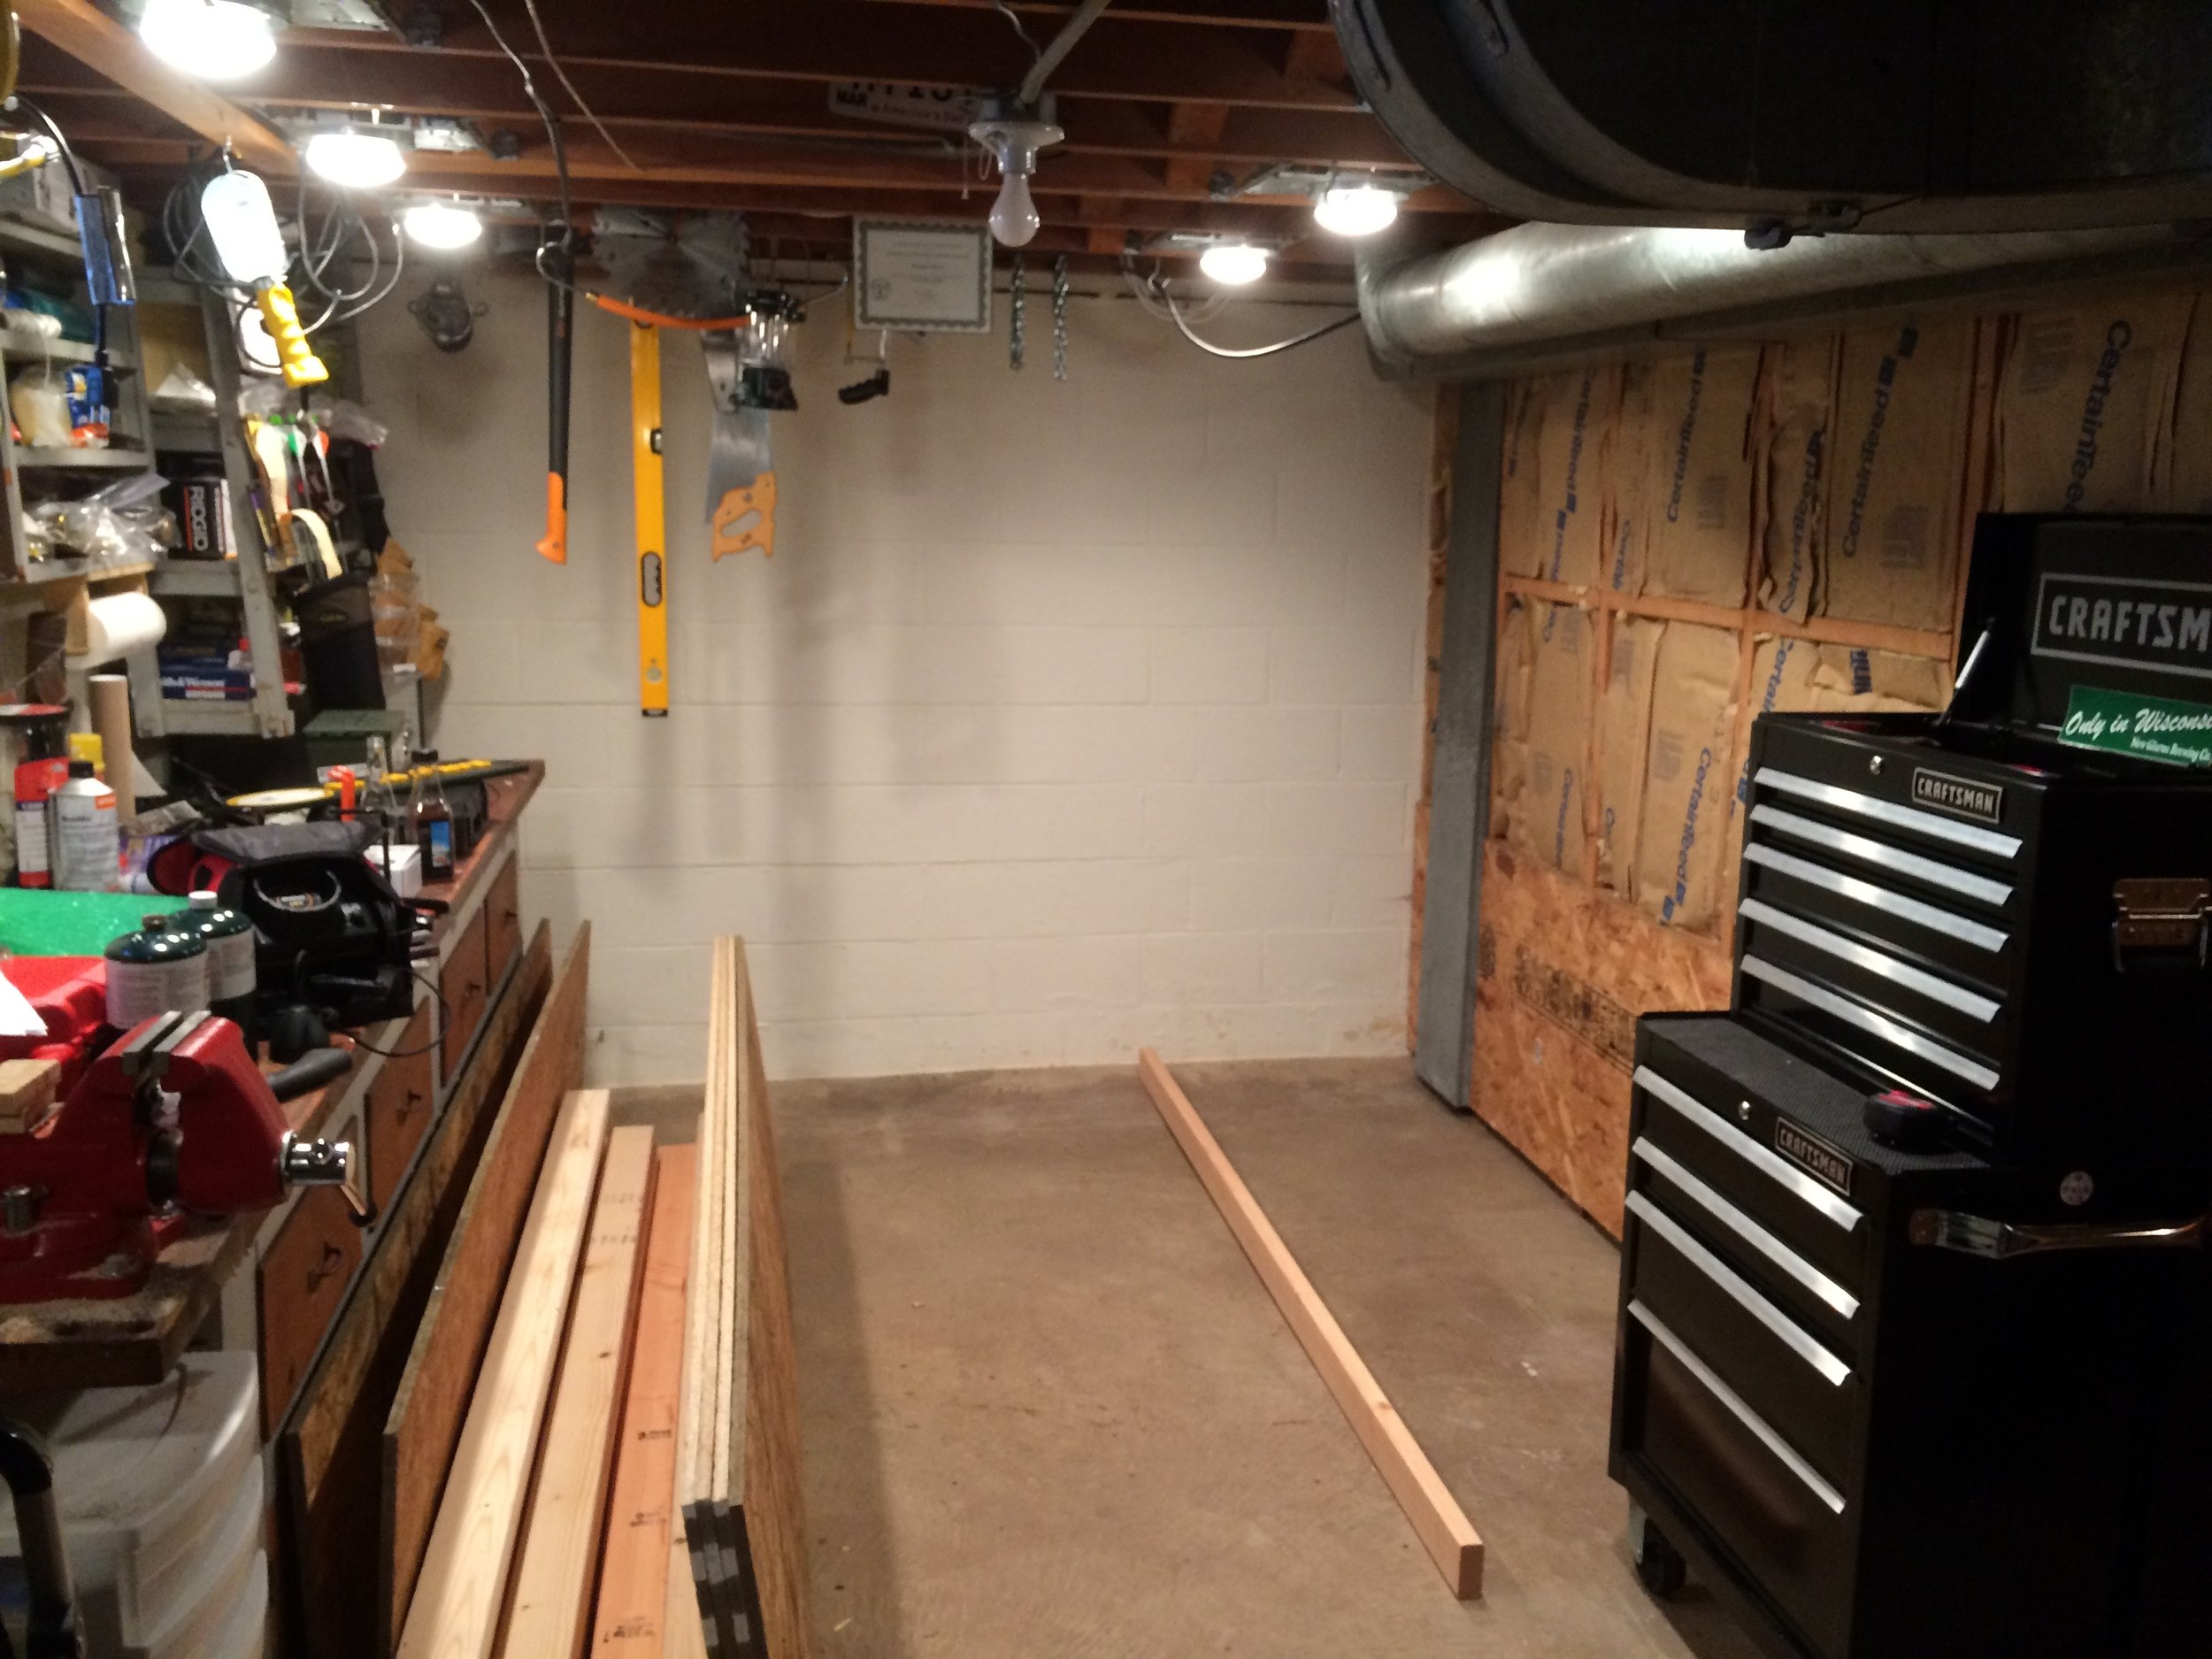 The corner I plan to build the shelves in the work area of our basement.